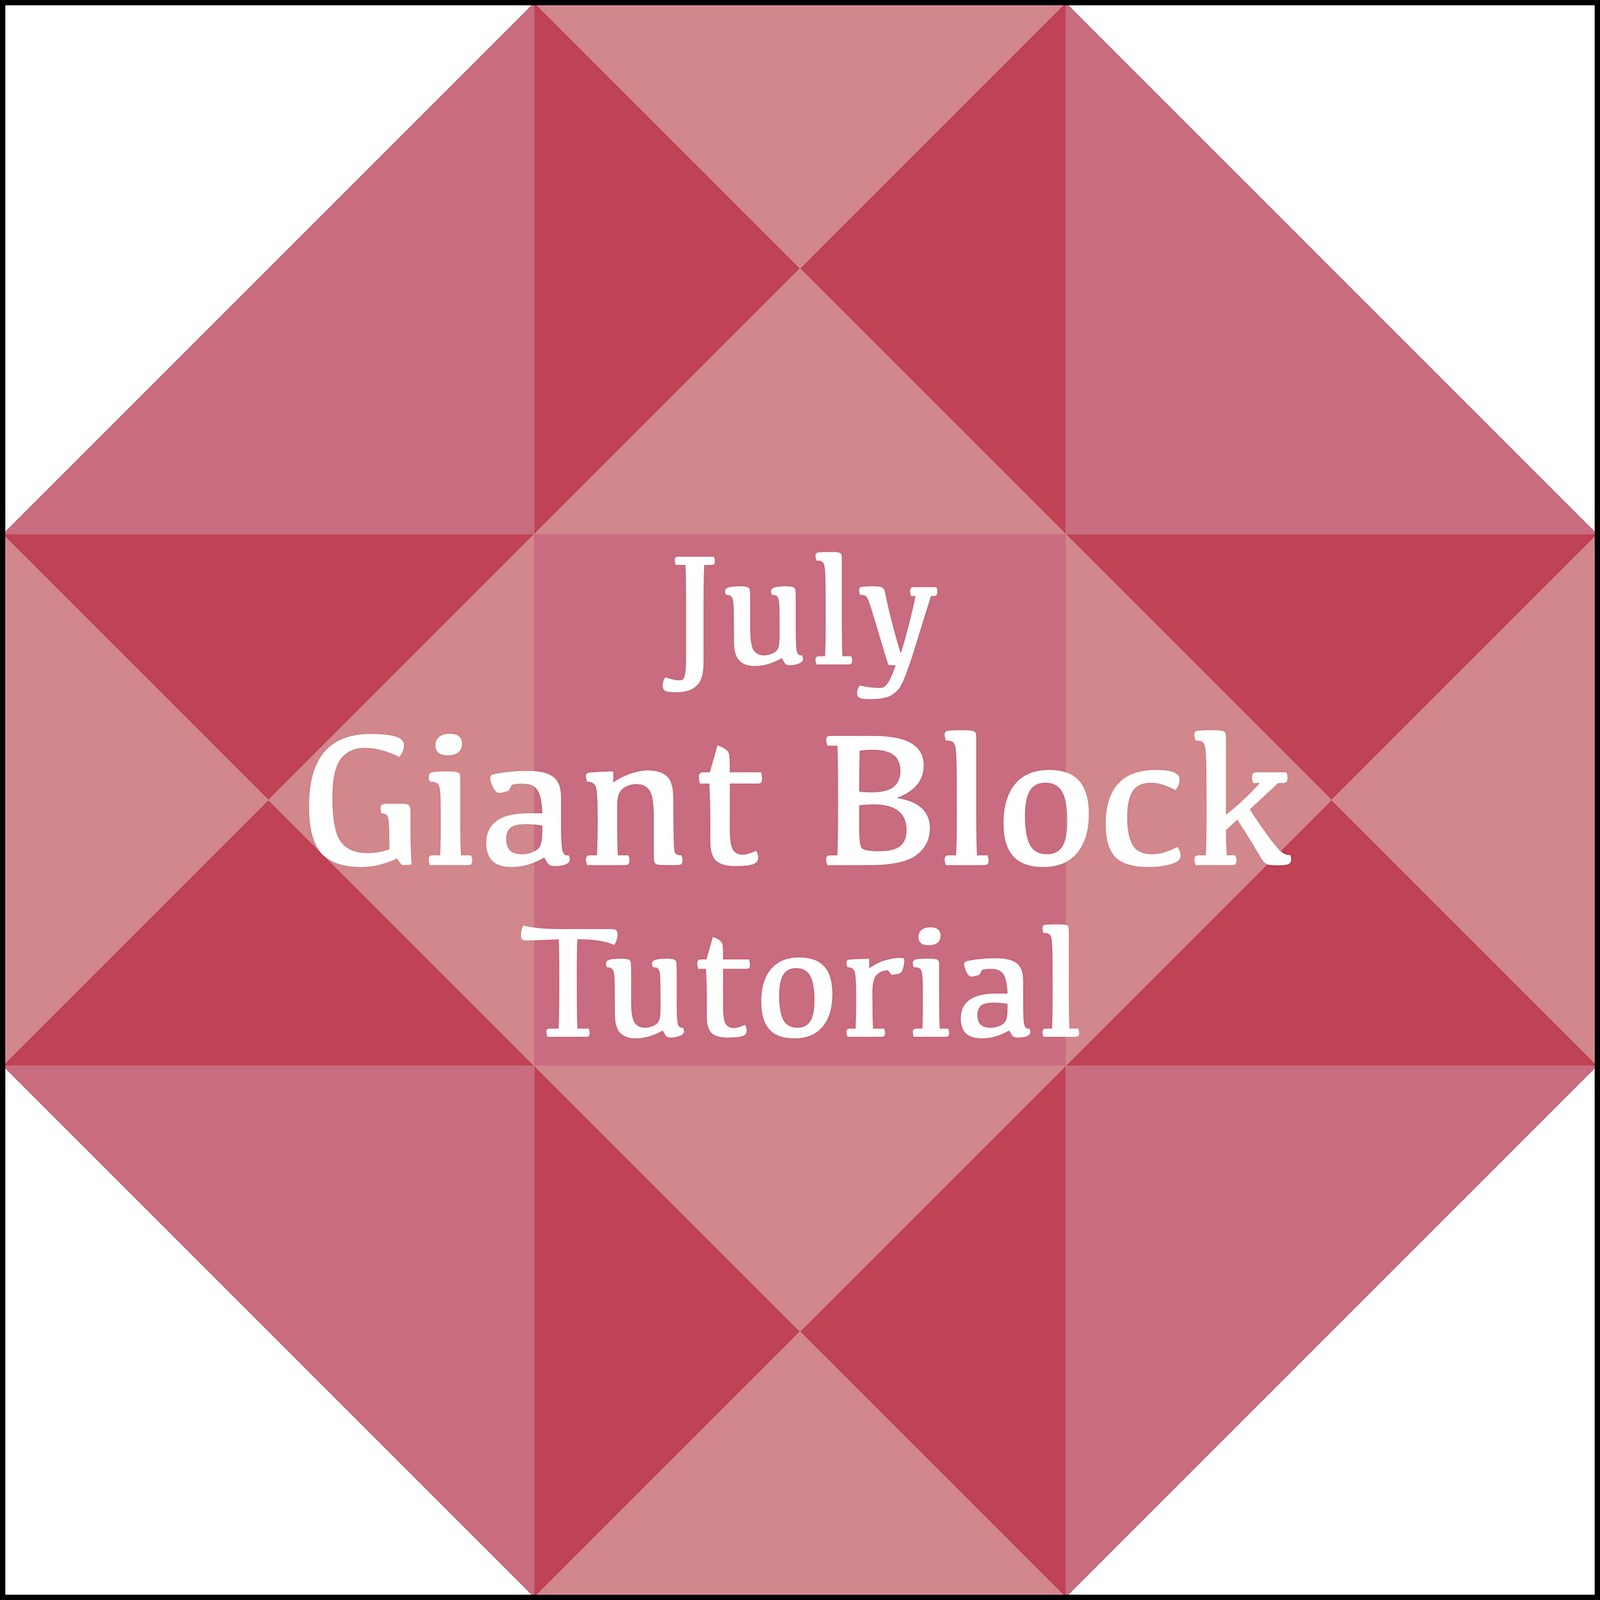 July Giant Block Tutorial